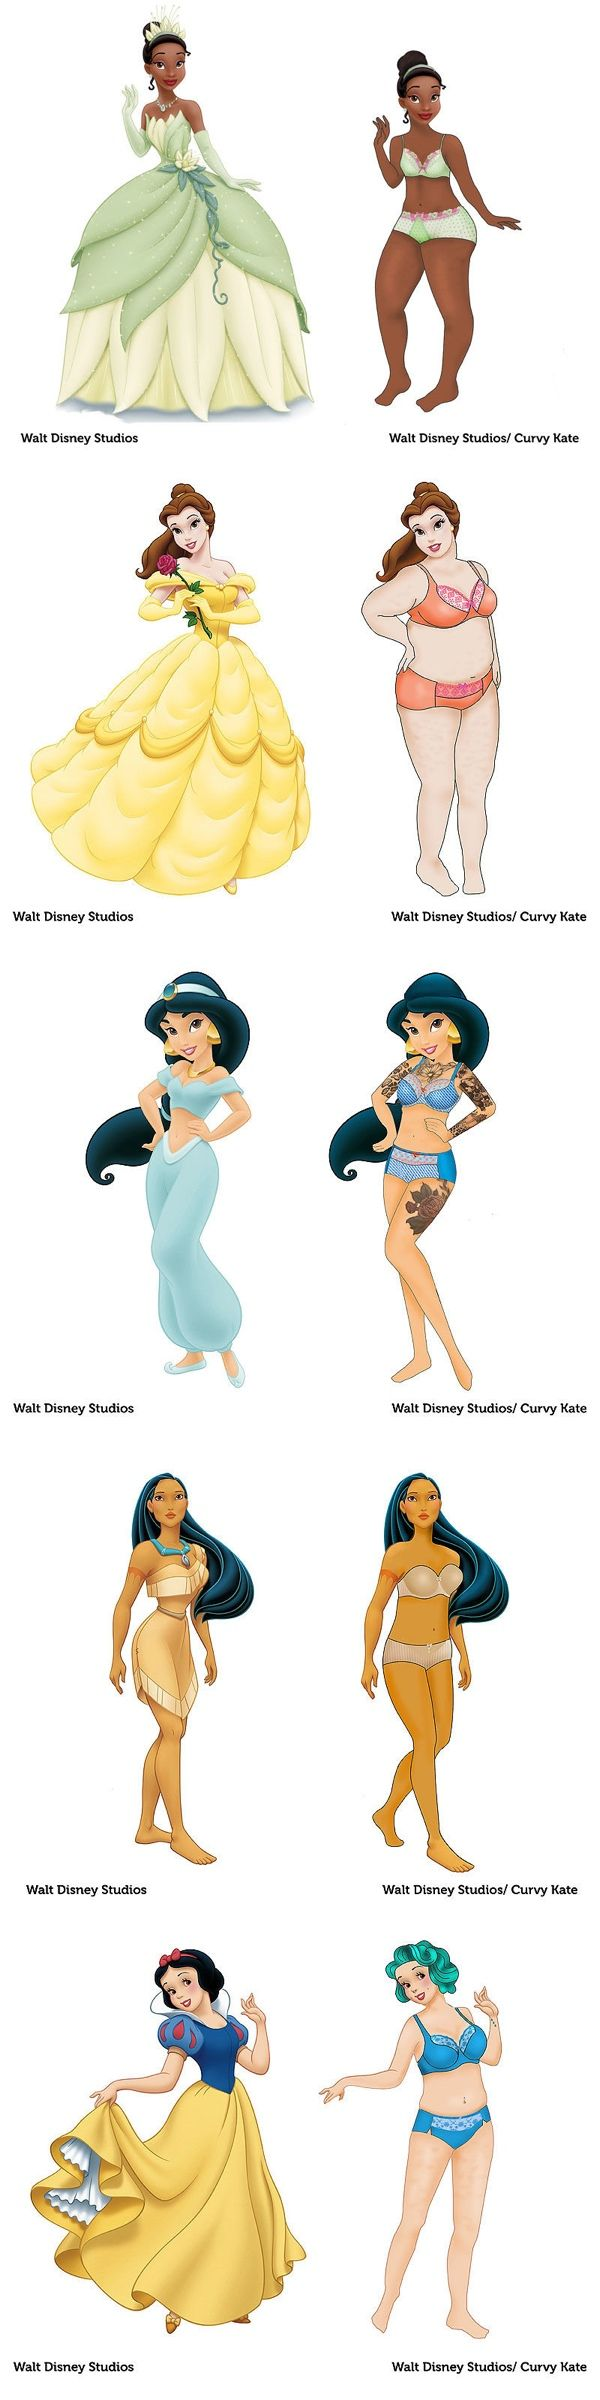 someone drew the disney princesses with normal bodies and